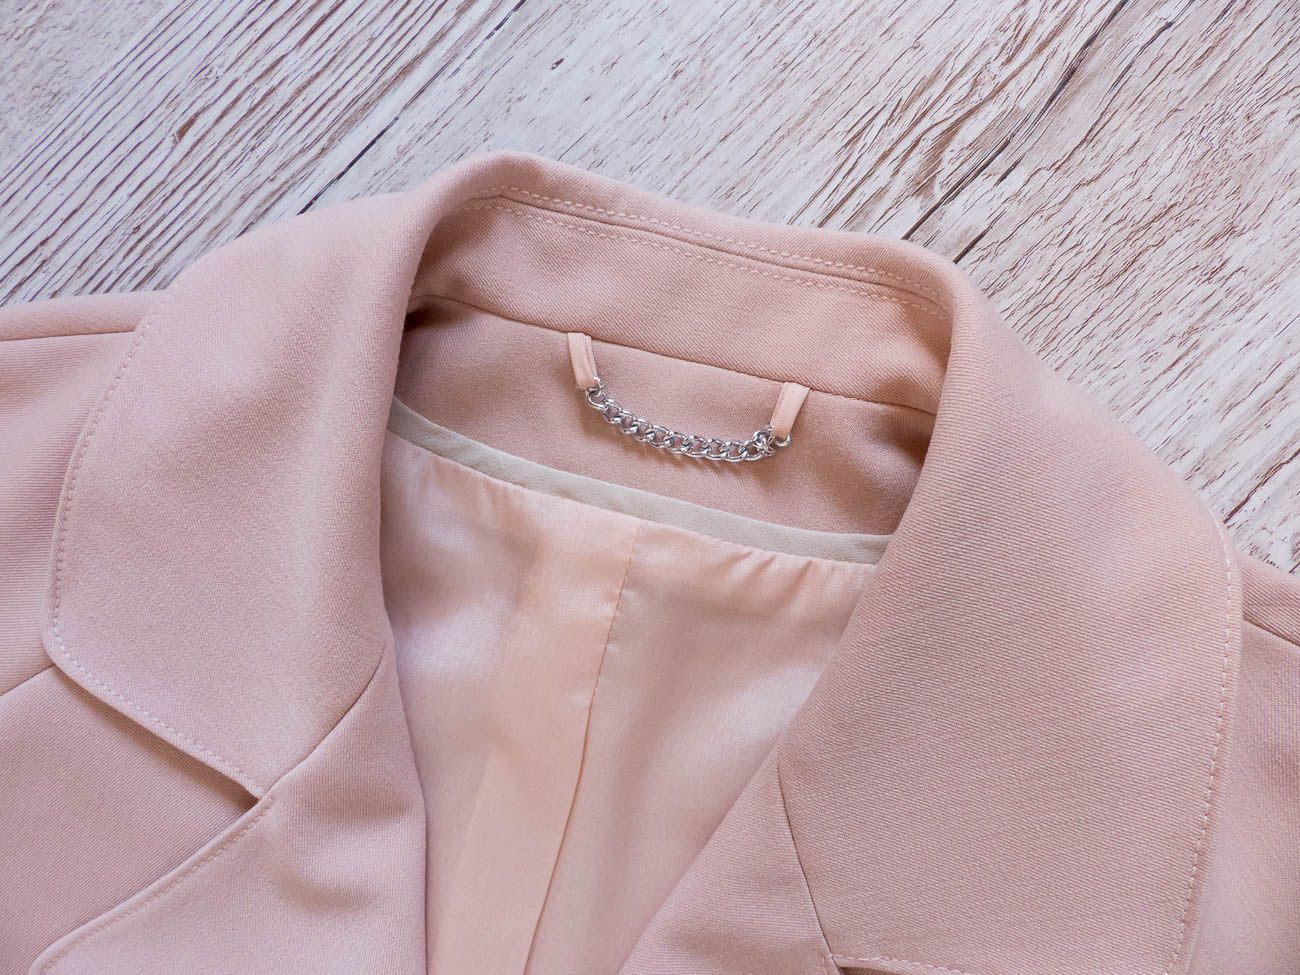 Trench coat collar detail